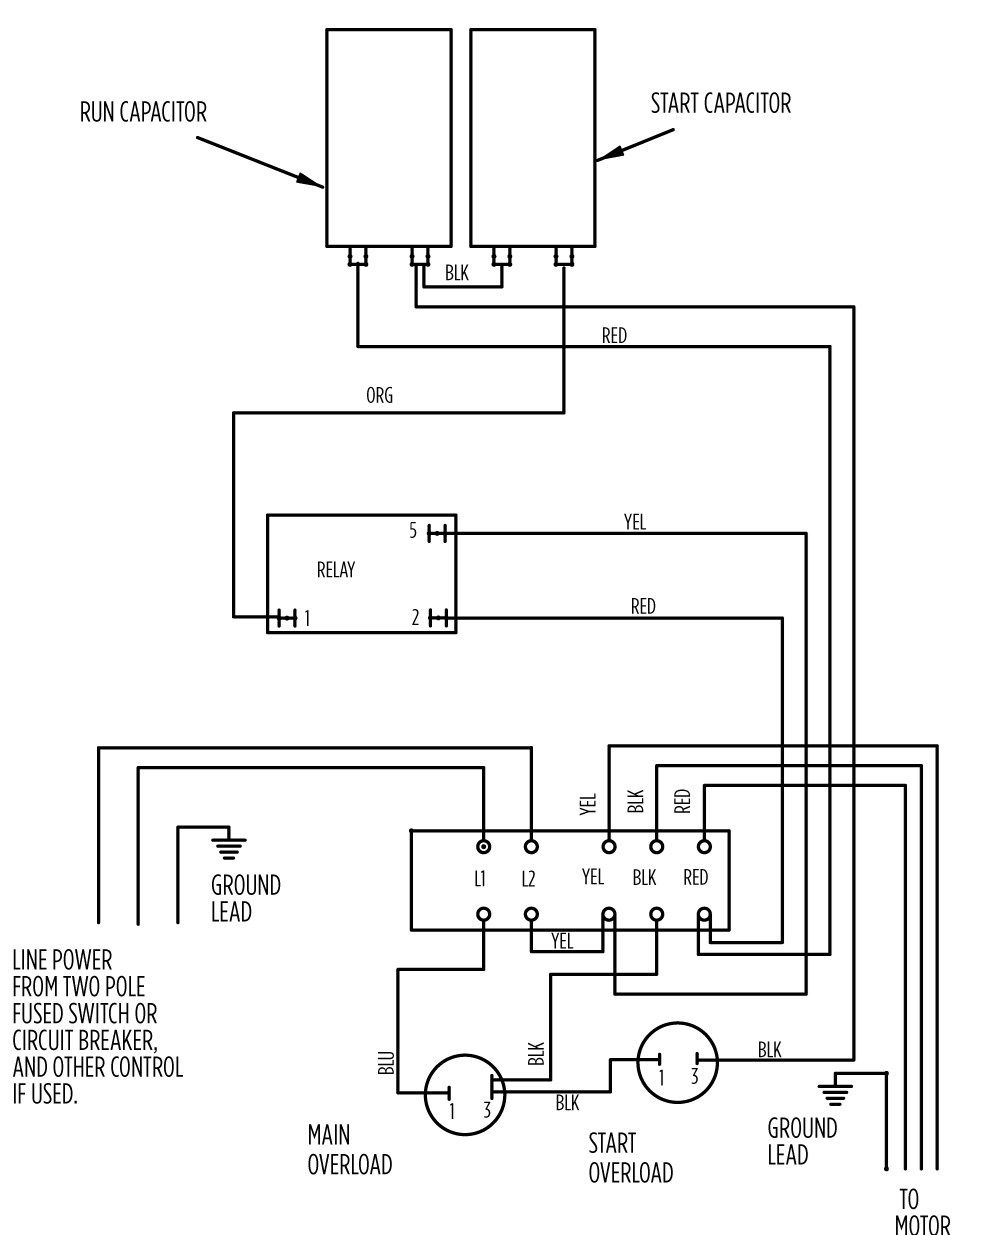 hight resolution of wiring diagram for 220 volt submersible pump wiring diagram 220 submersible pump wiring diagram